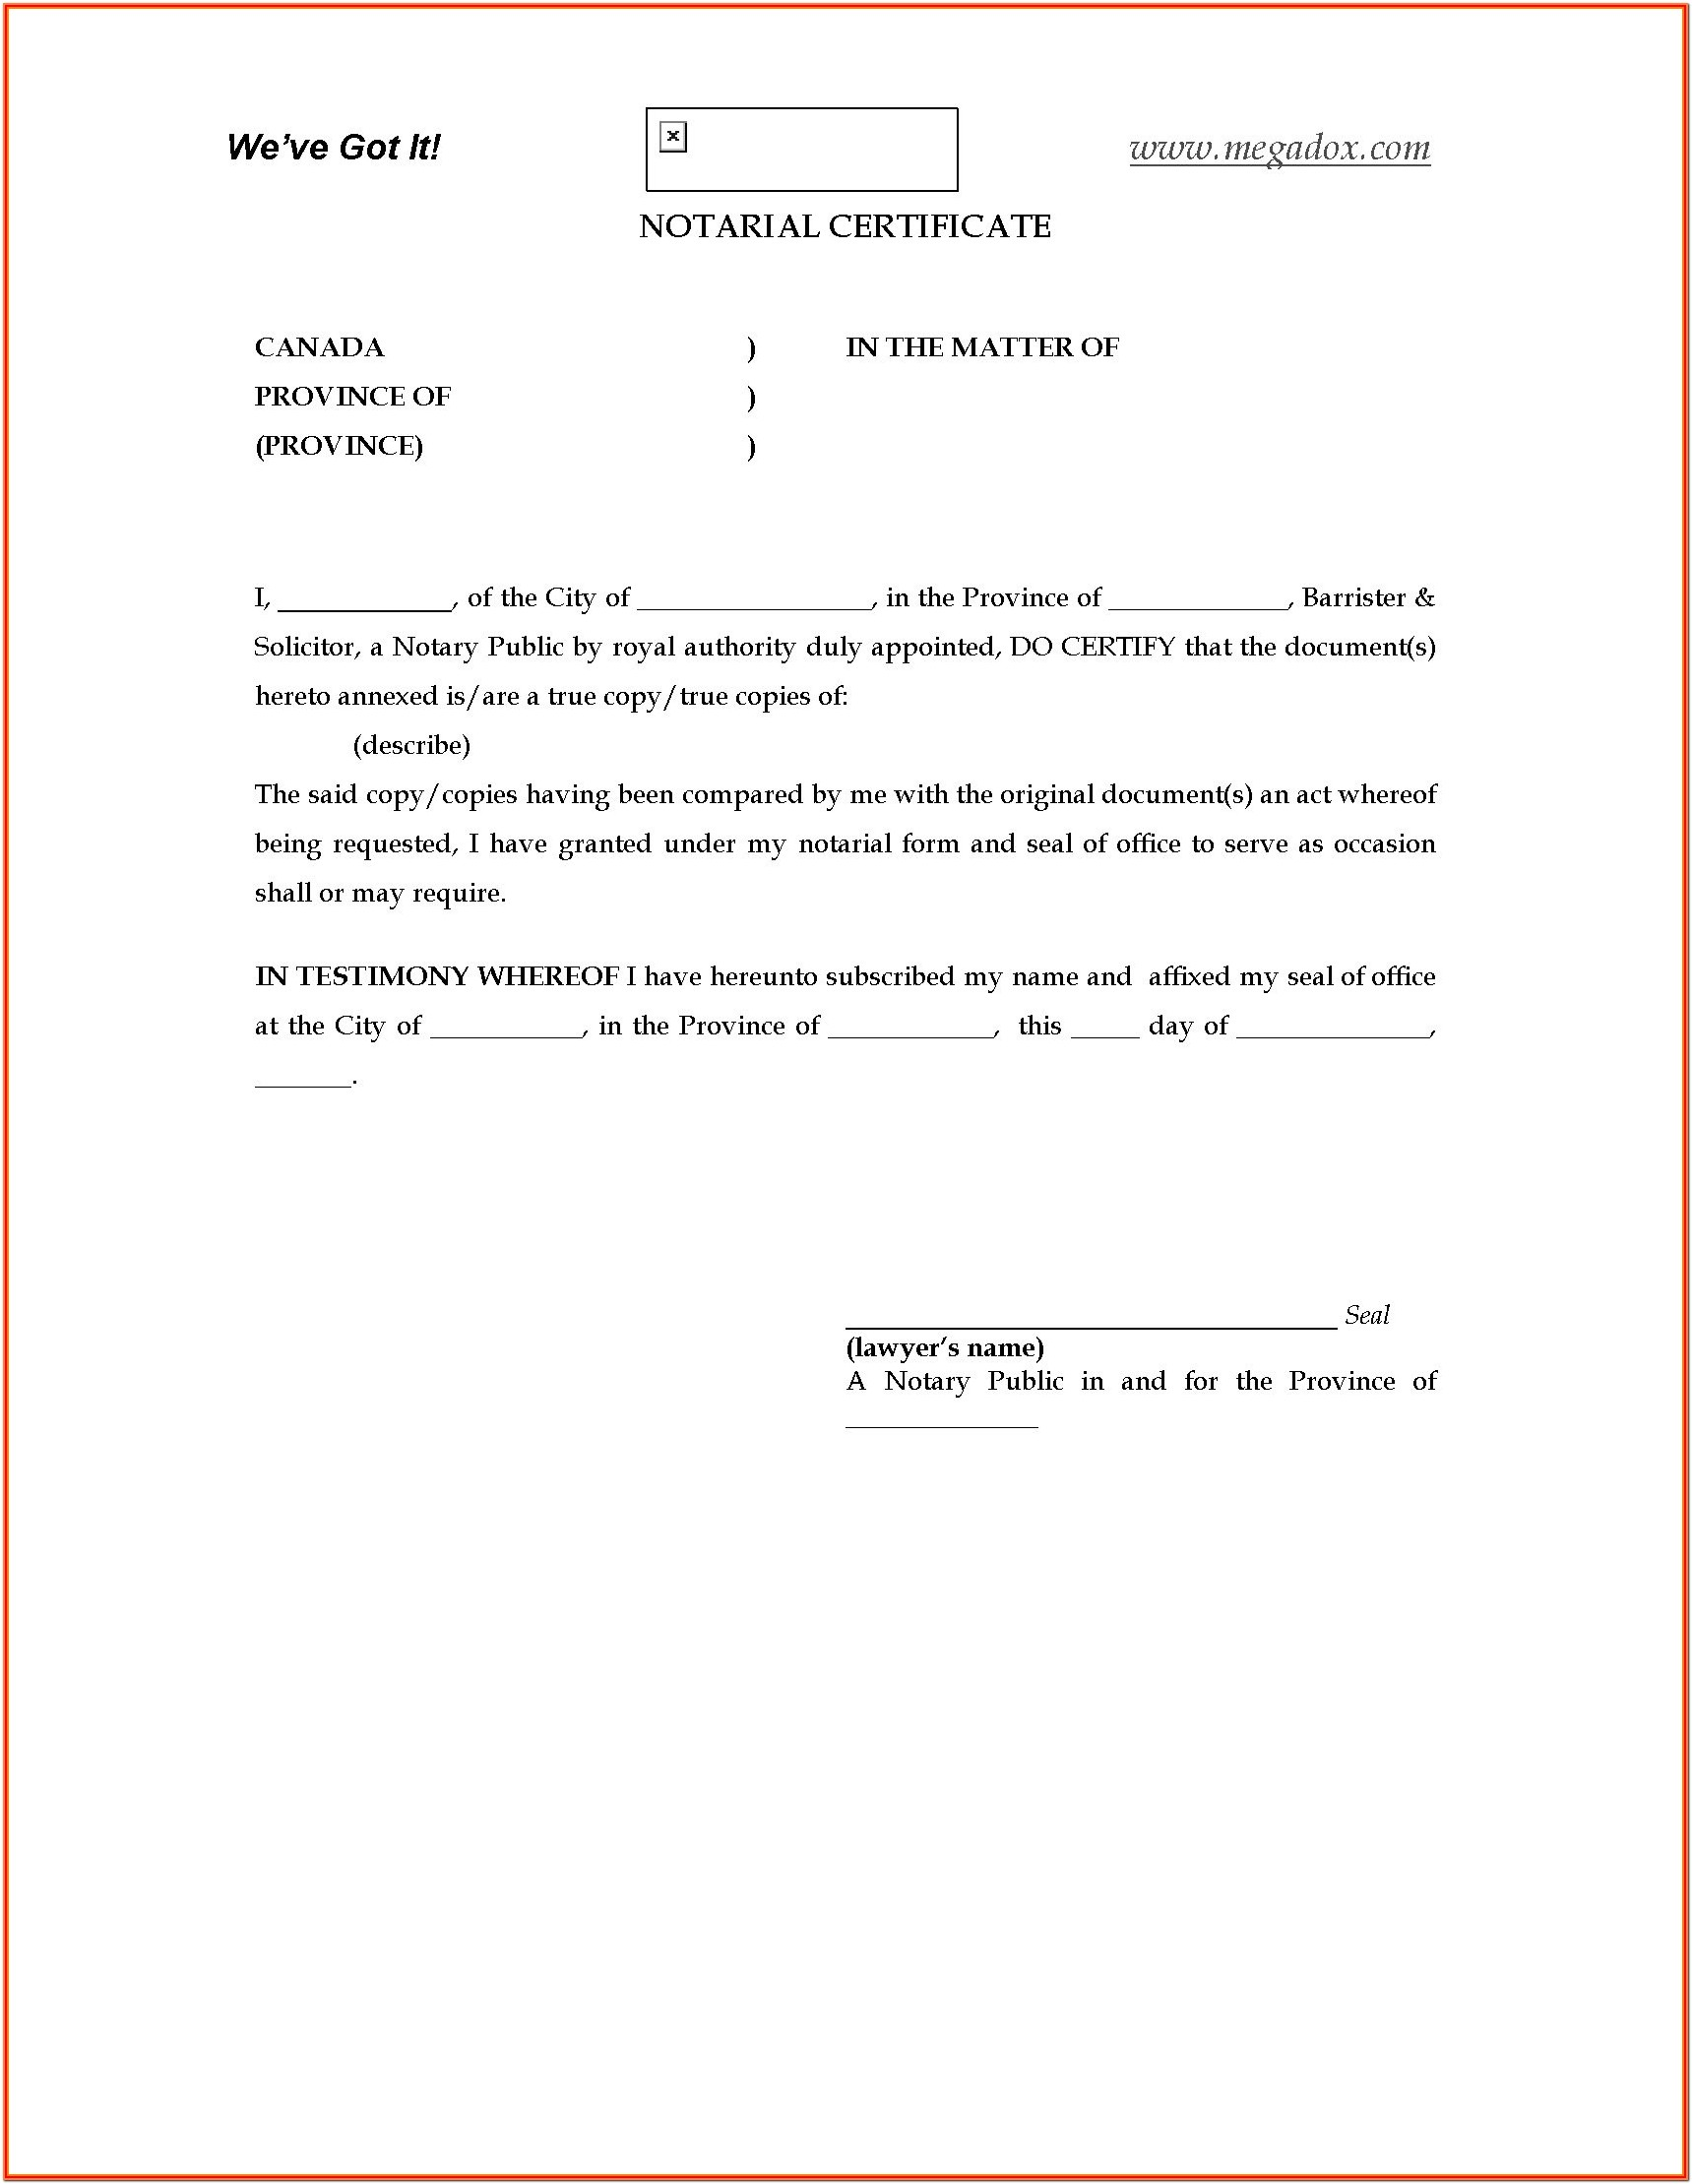 Notary Certificate Forms Online